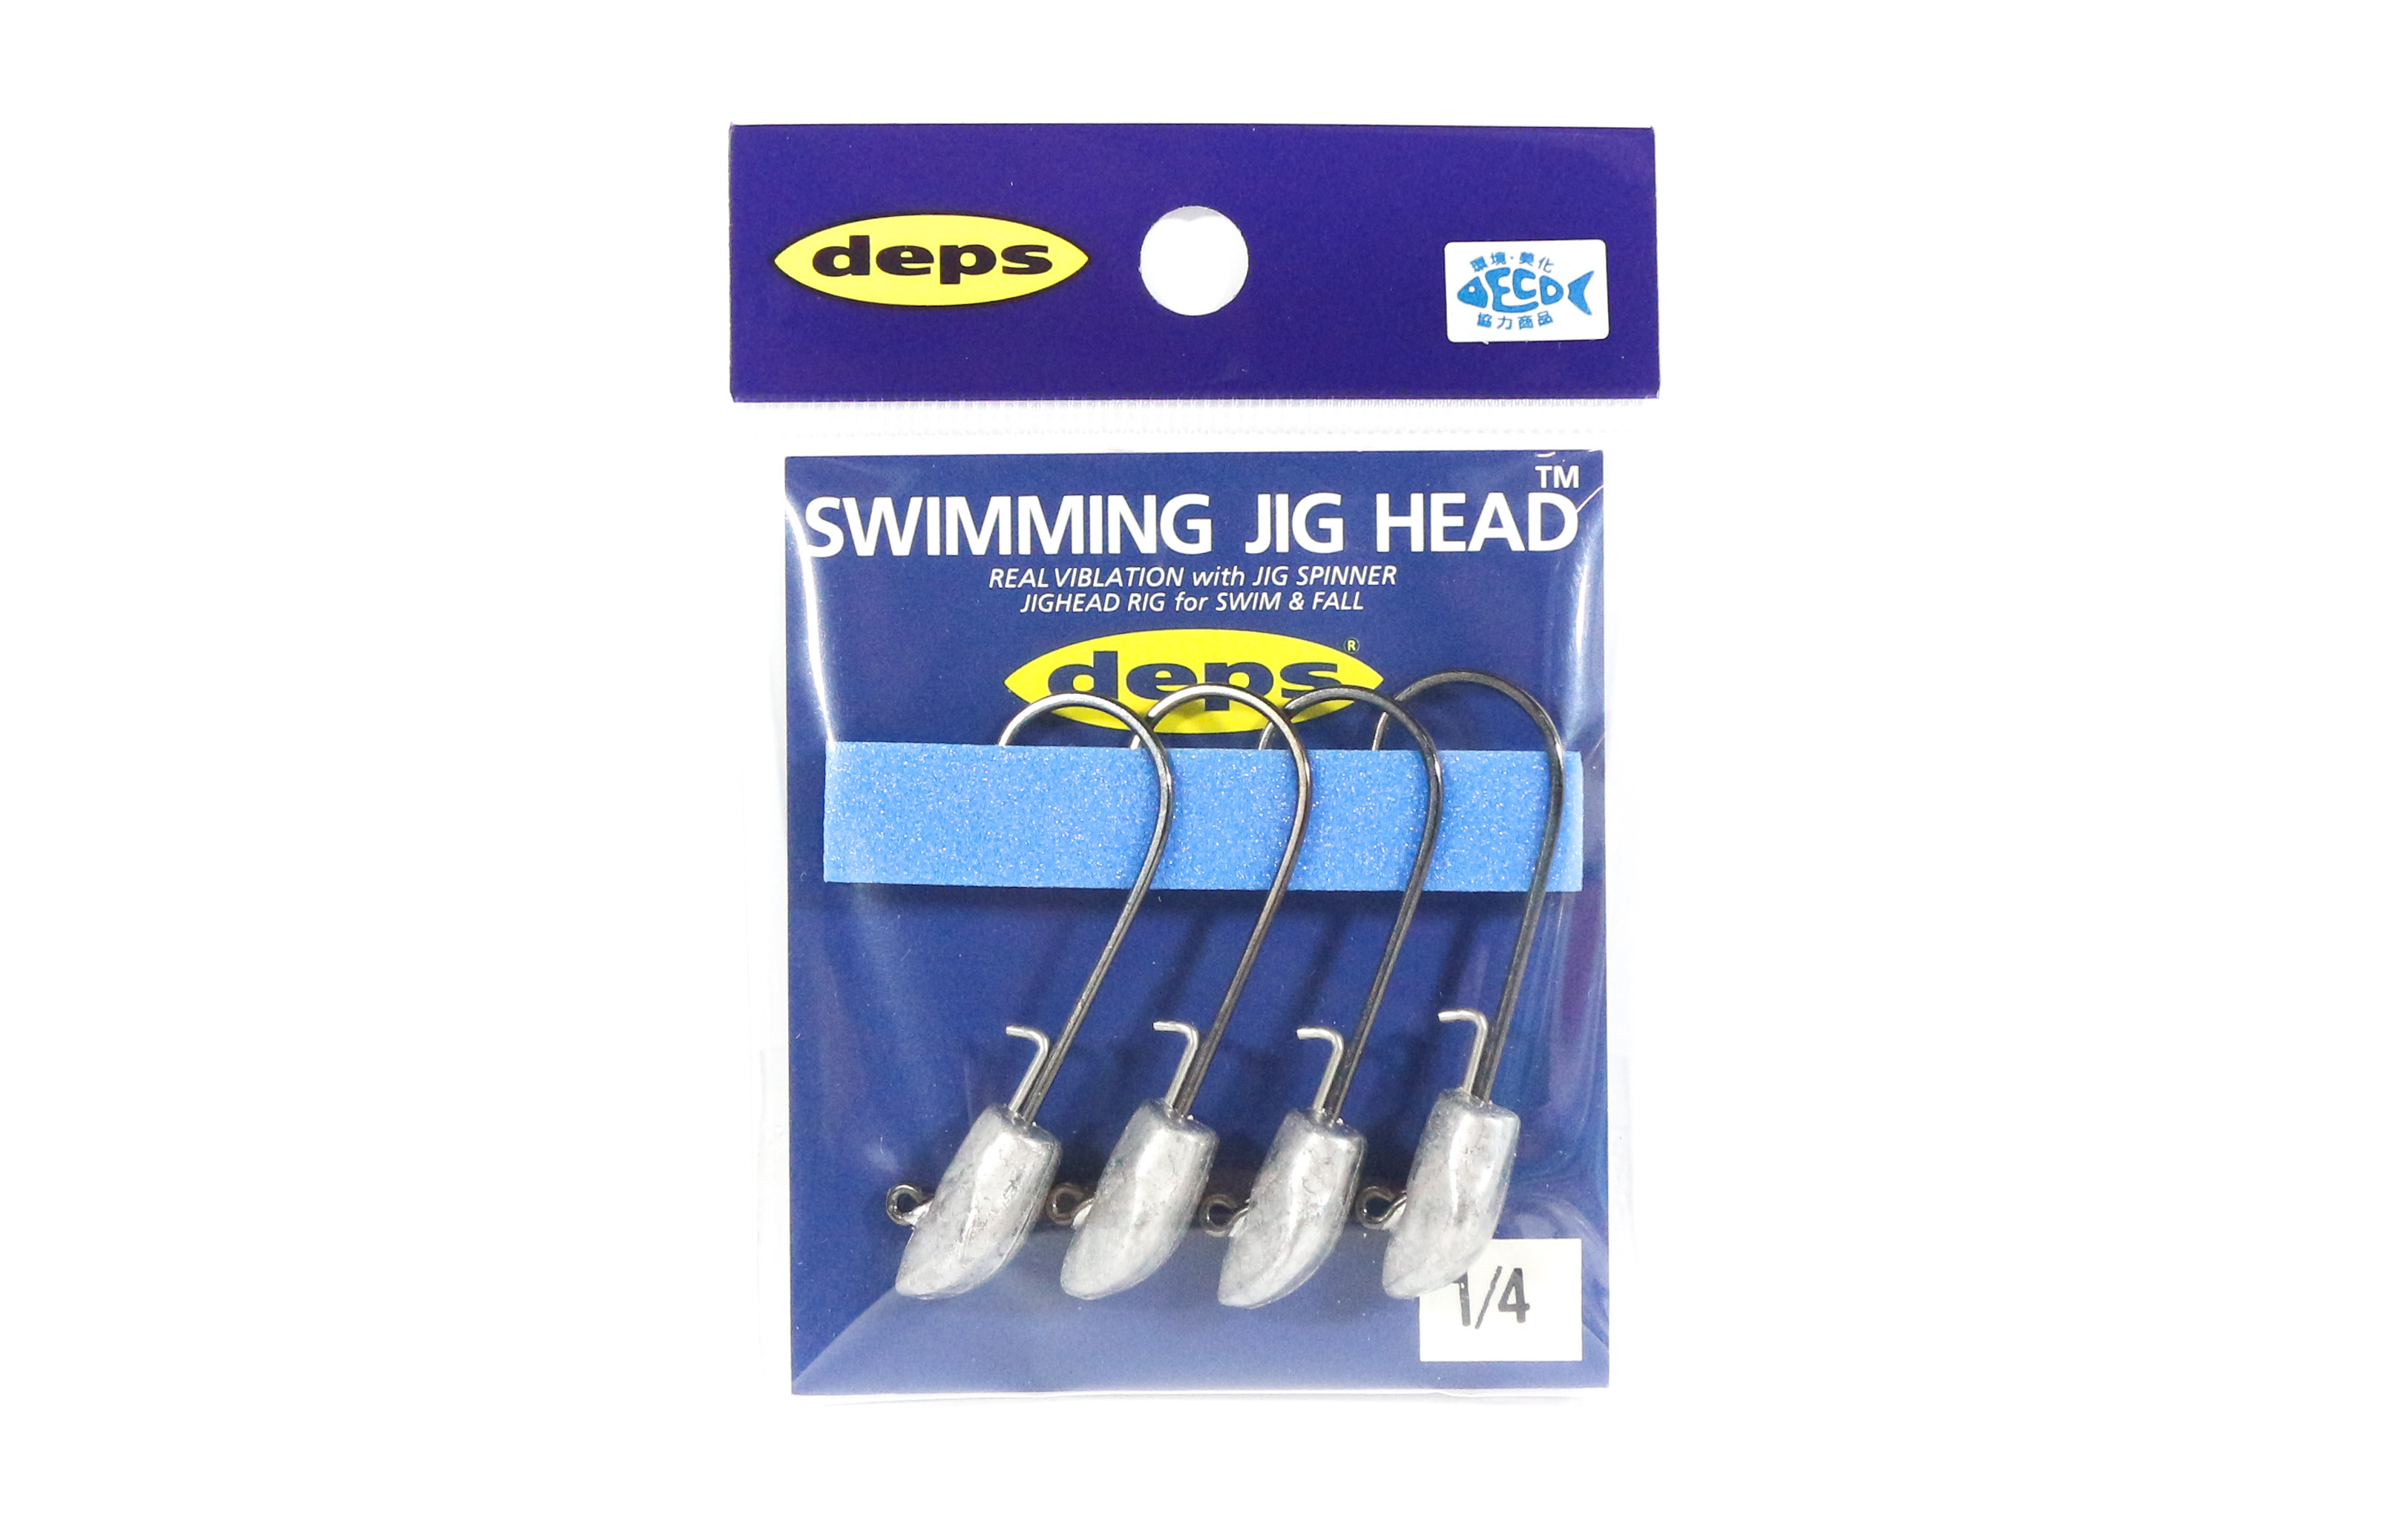 Deps Swimming Jighead 1/4 oz Size 3/0 , 4 piece per pack (0046)